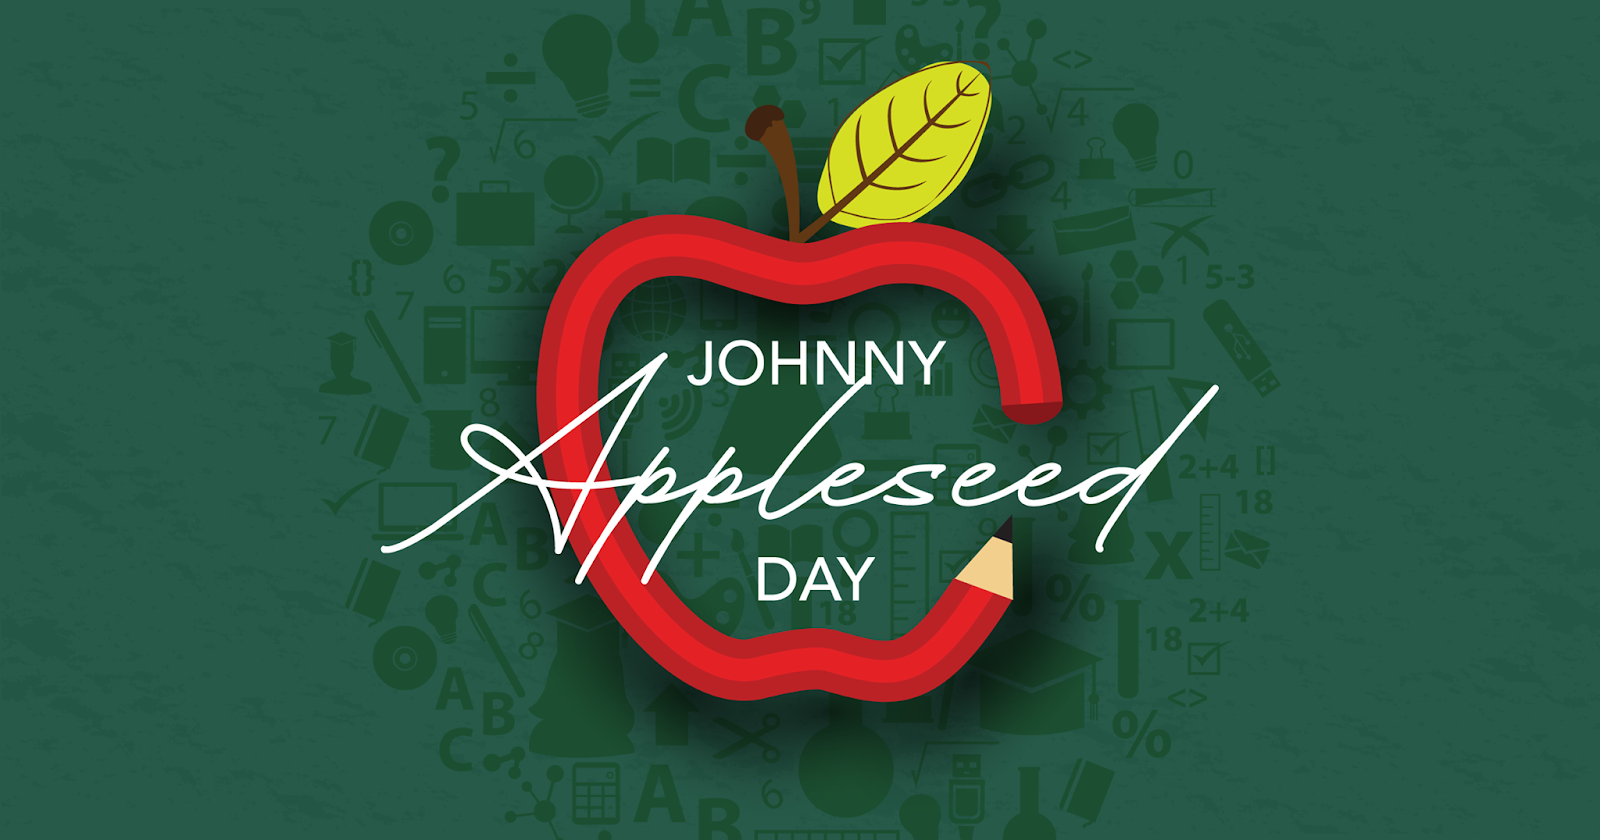 Johnny Appleseed Day Wishes For Facebook